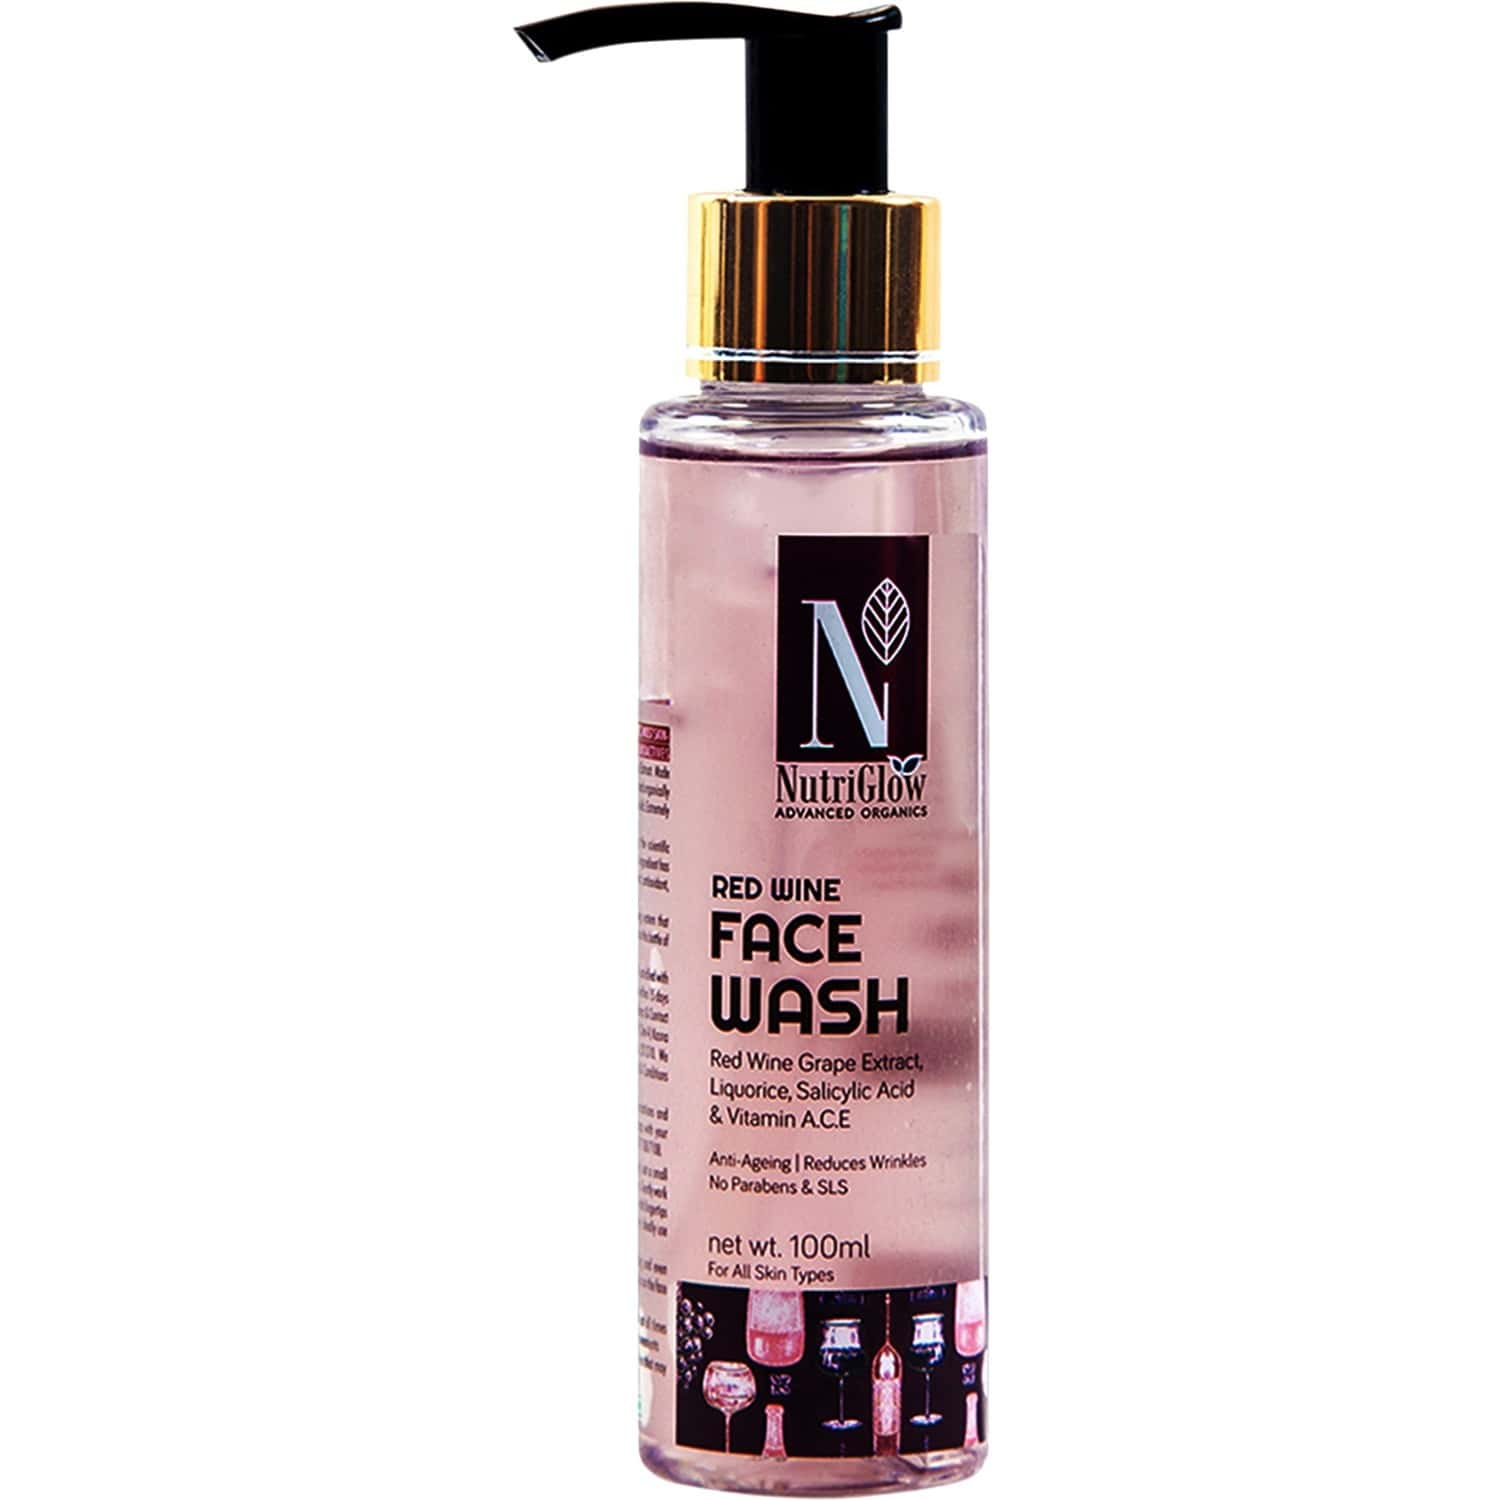 Nutriglow Advanced Organics Red Wine Face Wash 100ml /anti-ageing/red Wine Grape Extracts/ Skin Glow